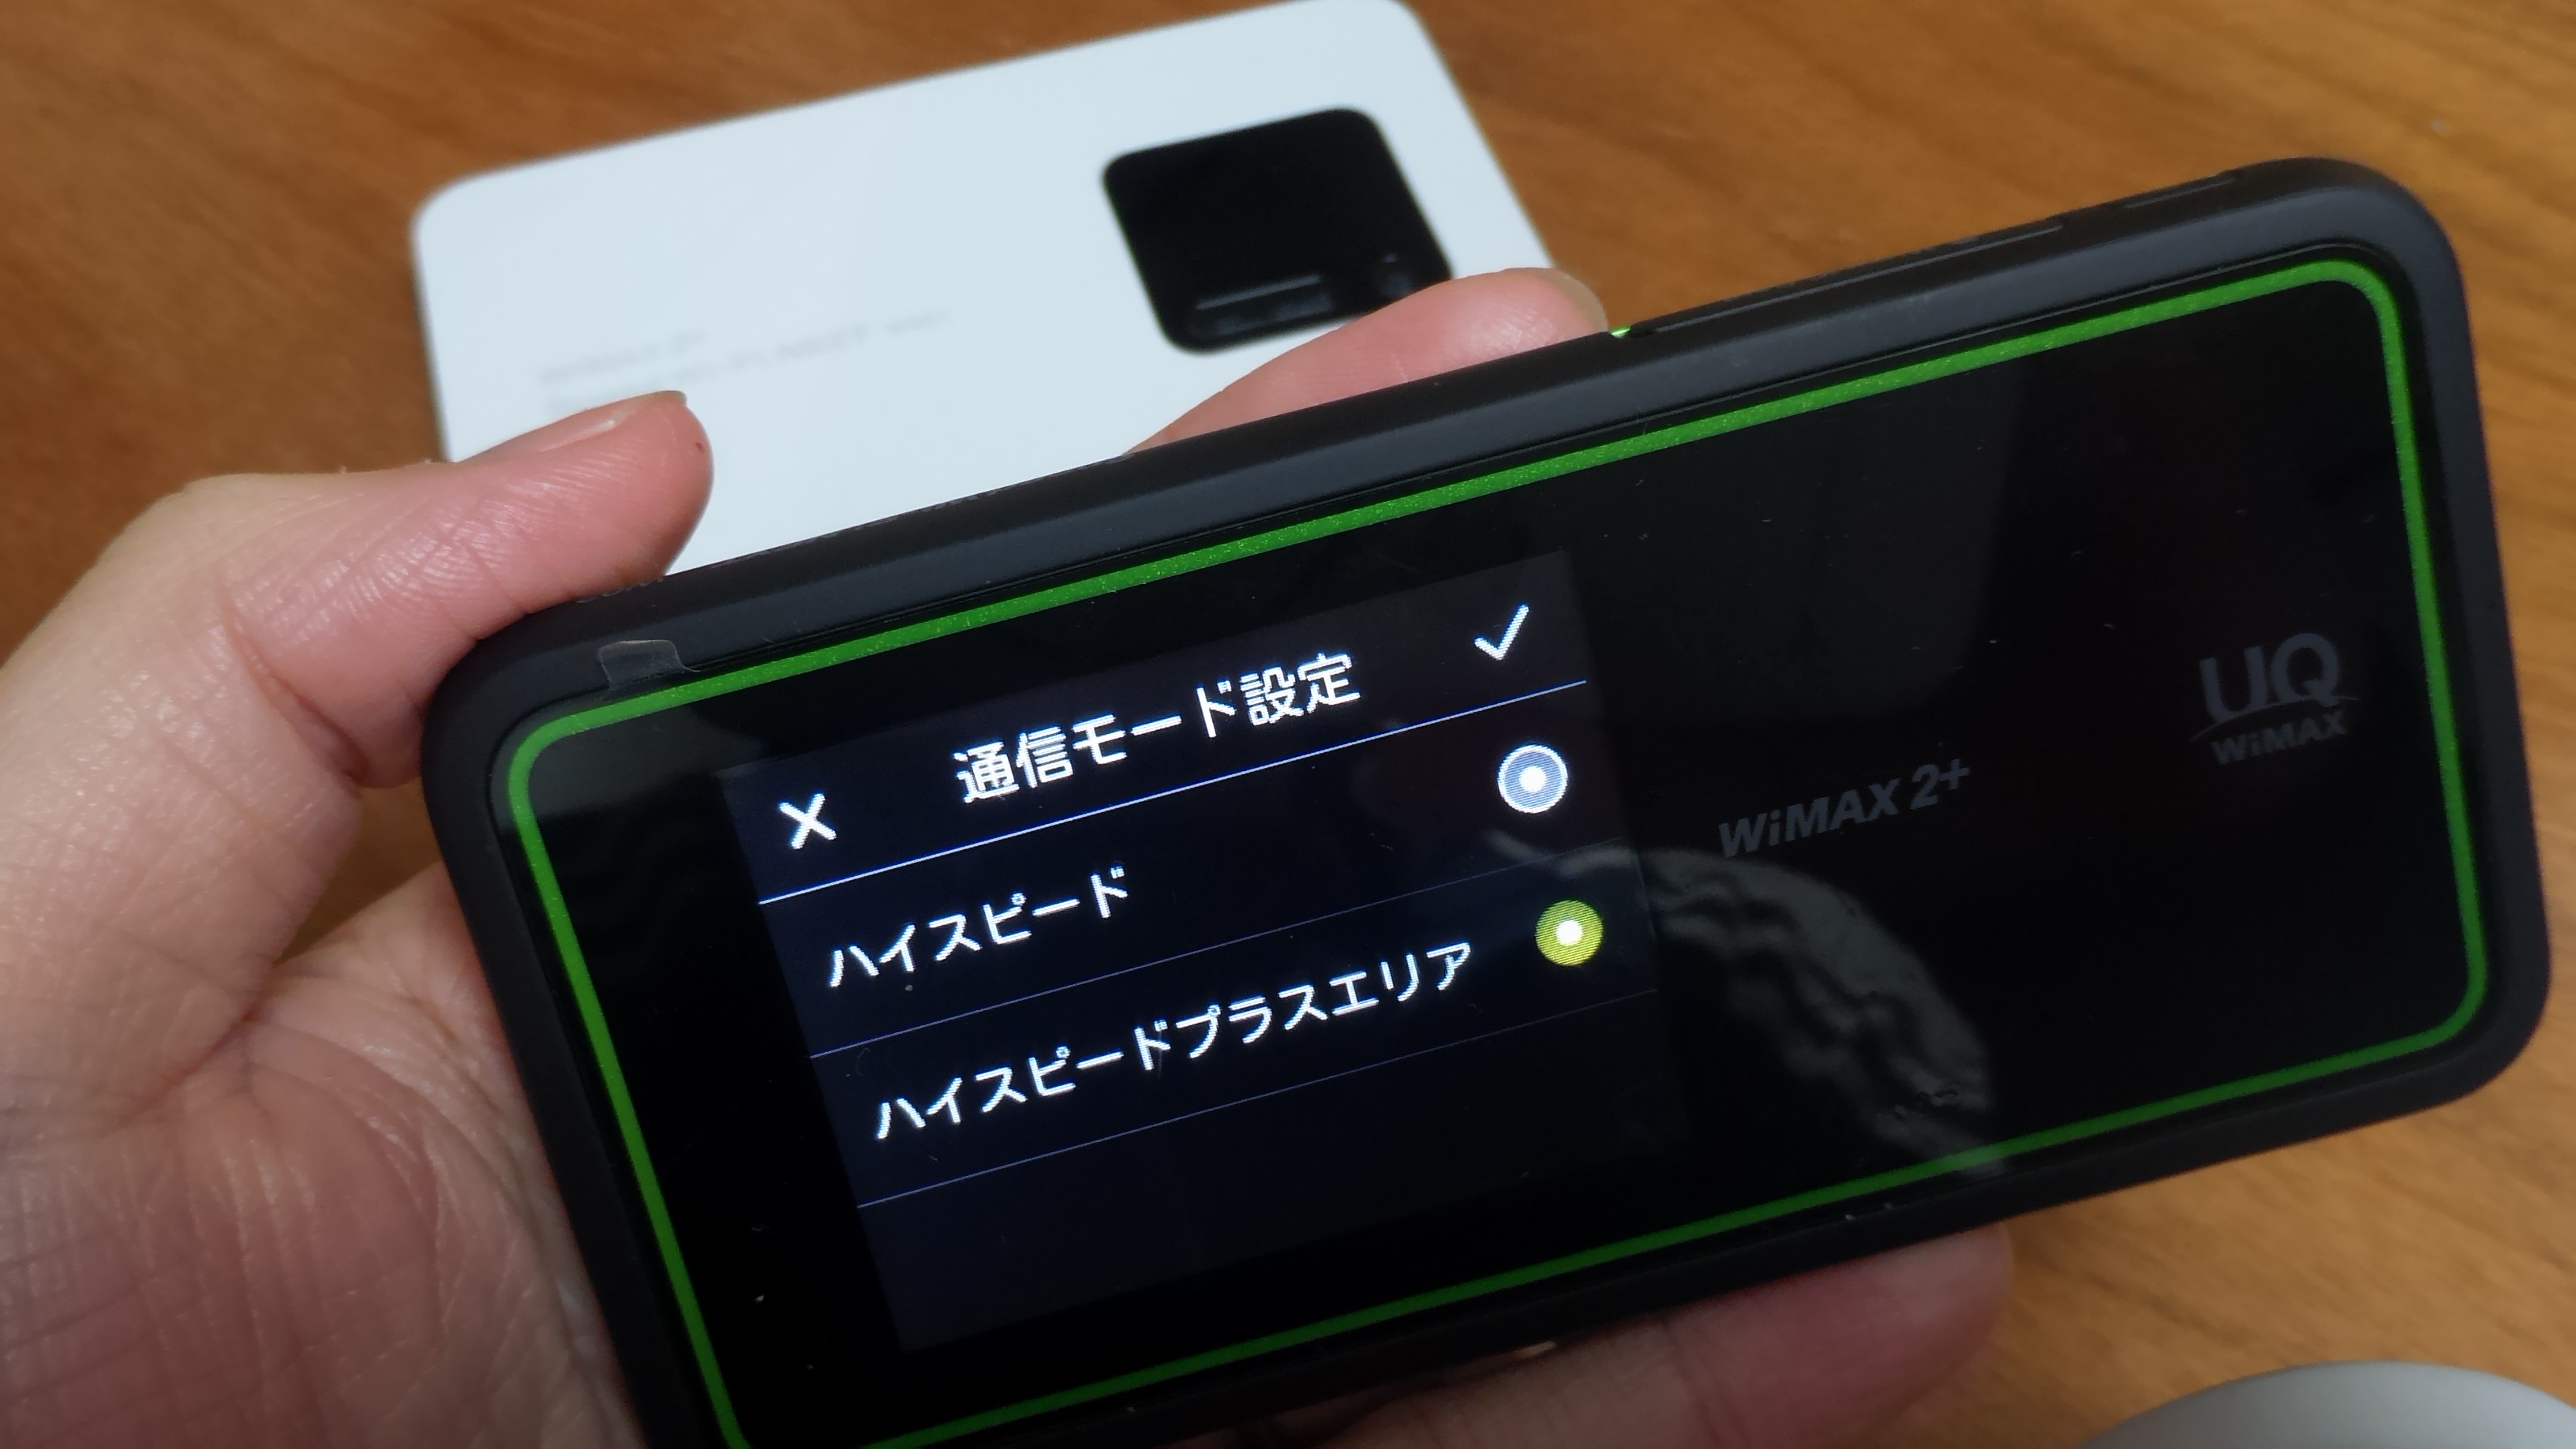 WiMAX 2+ルーター